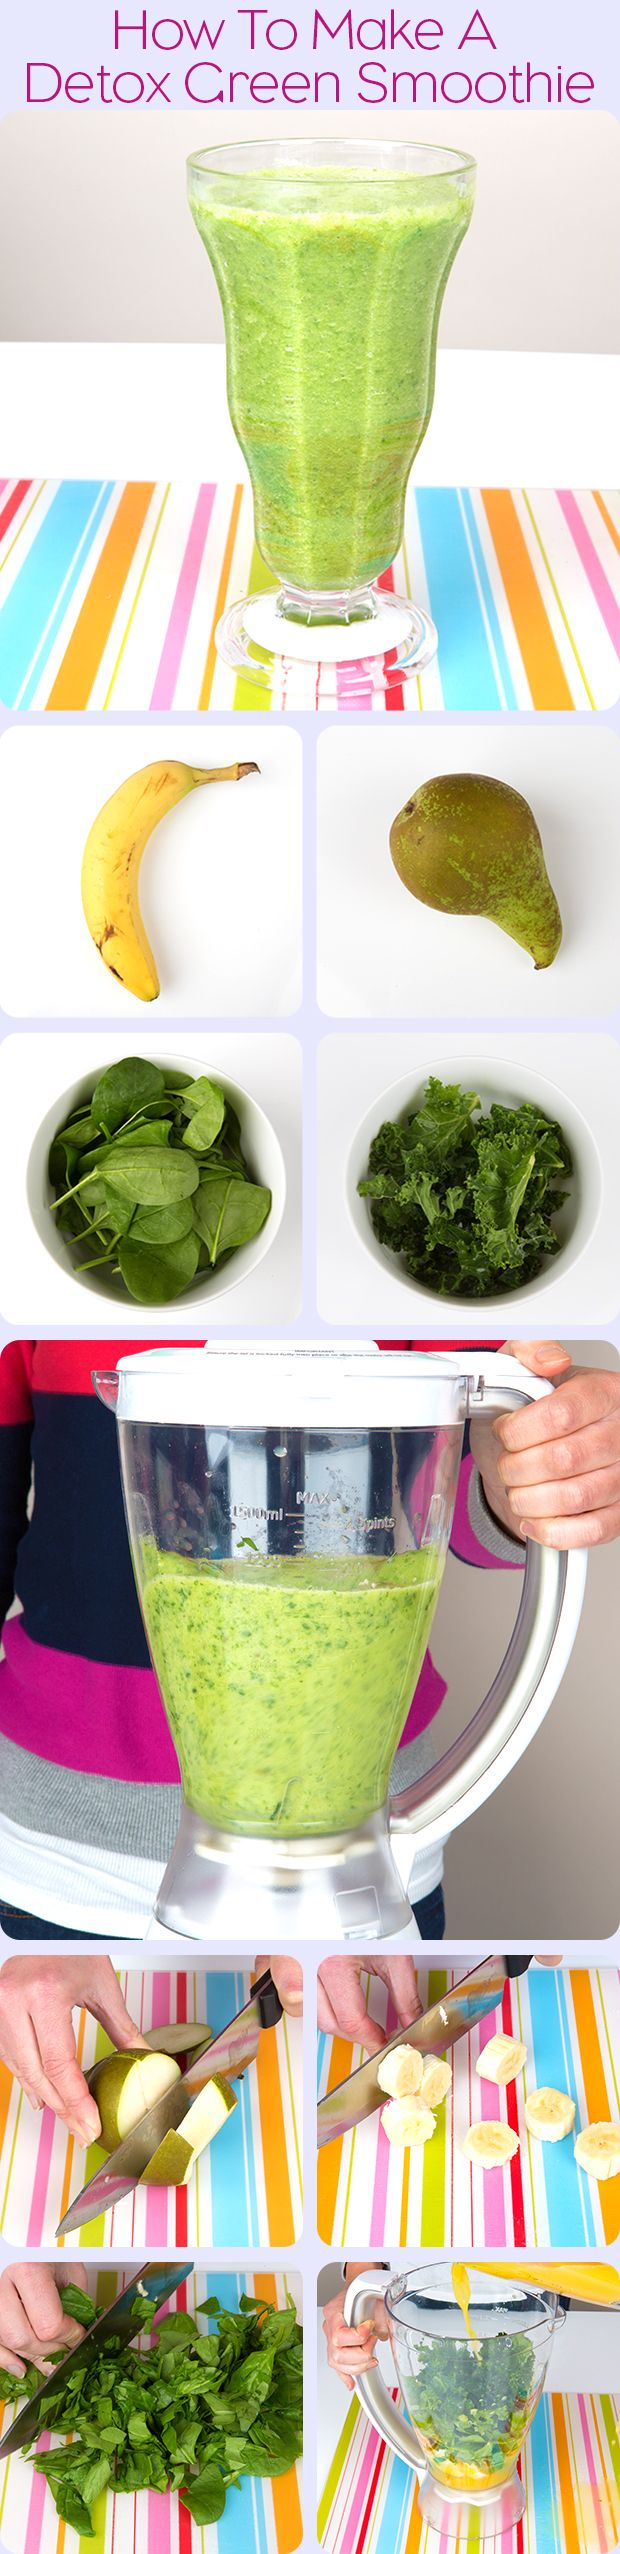 How to Make a Detox Green Smoothie